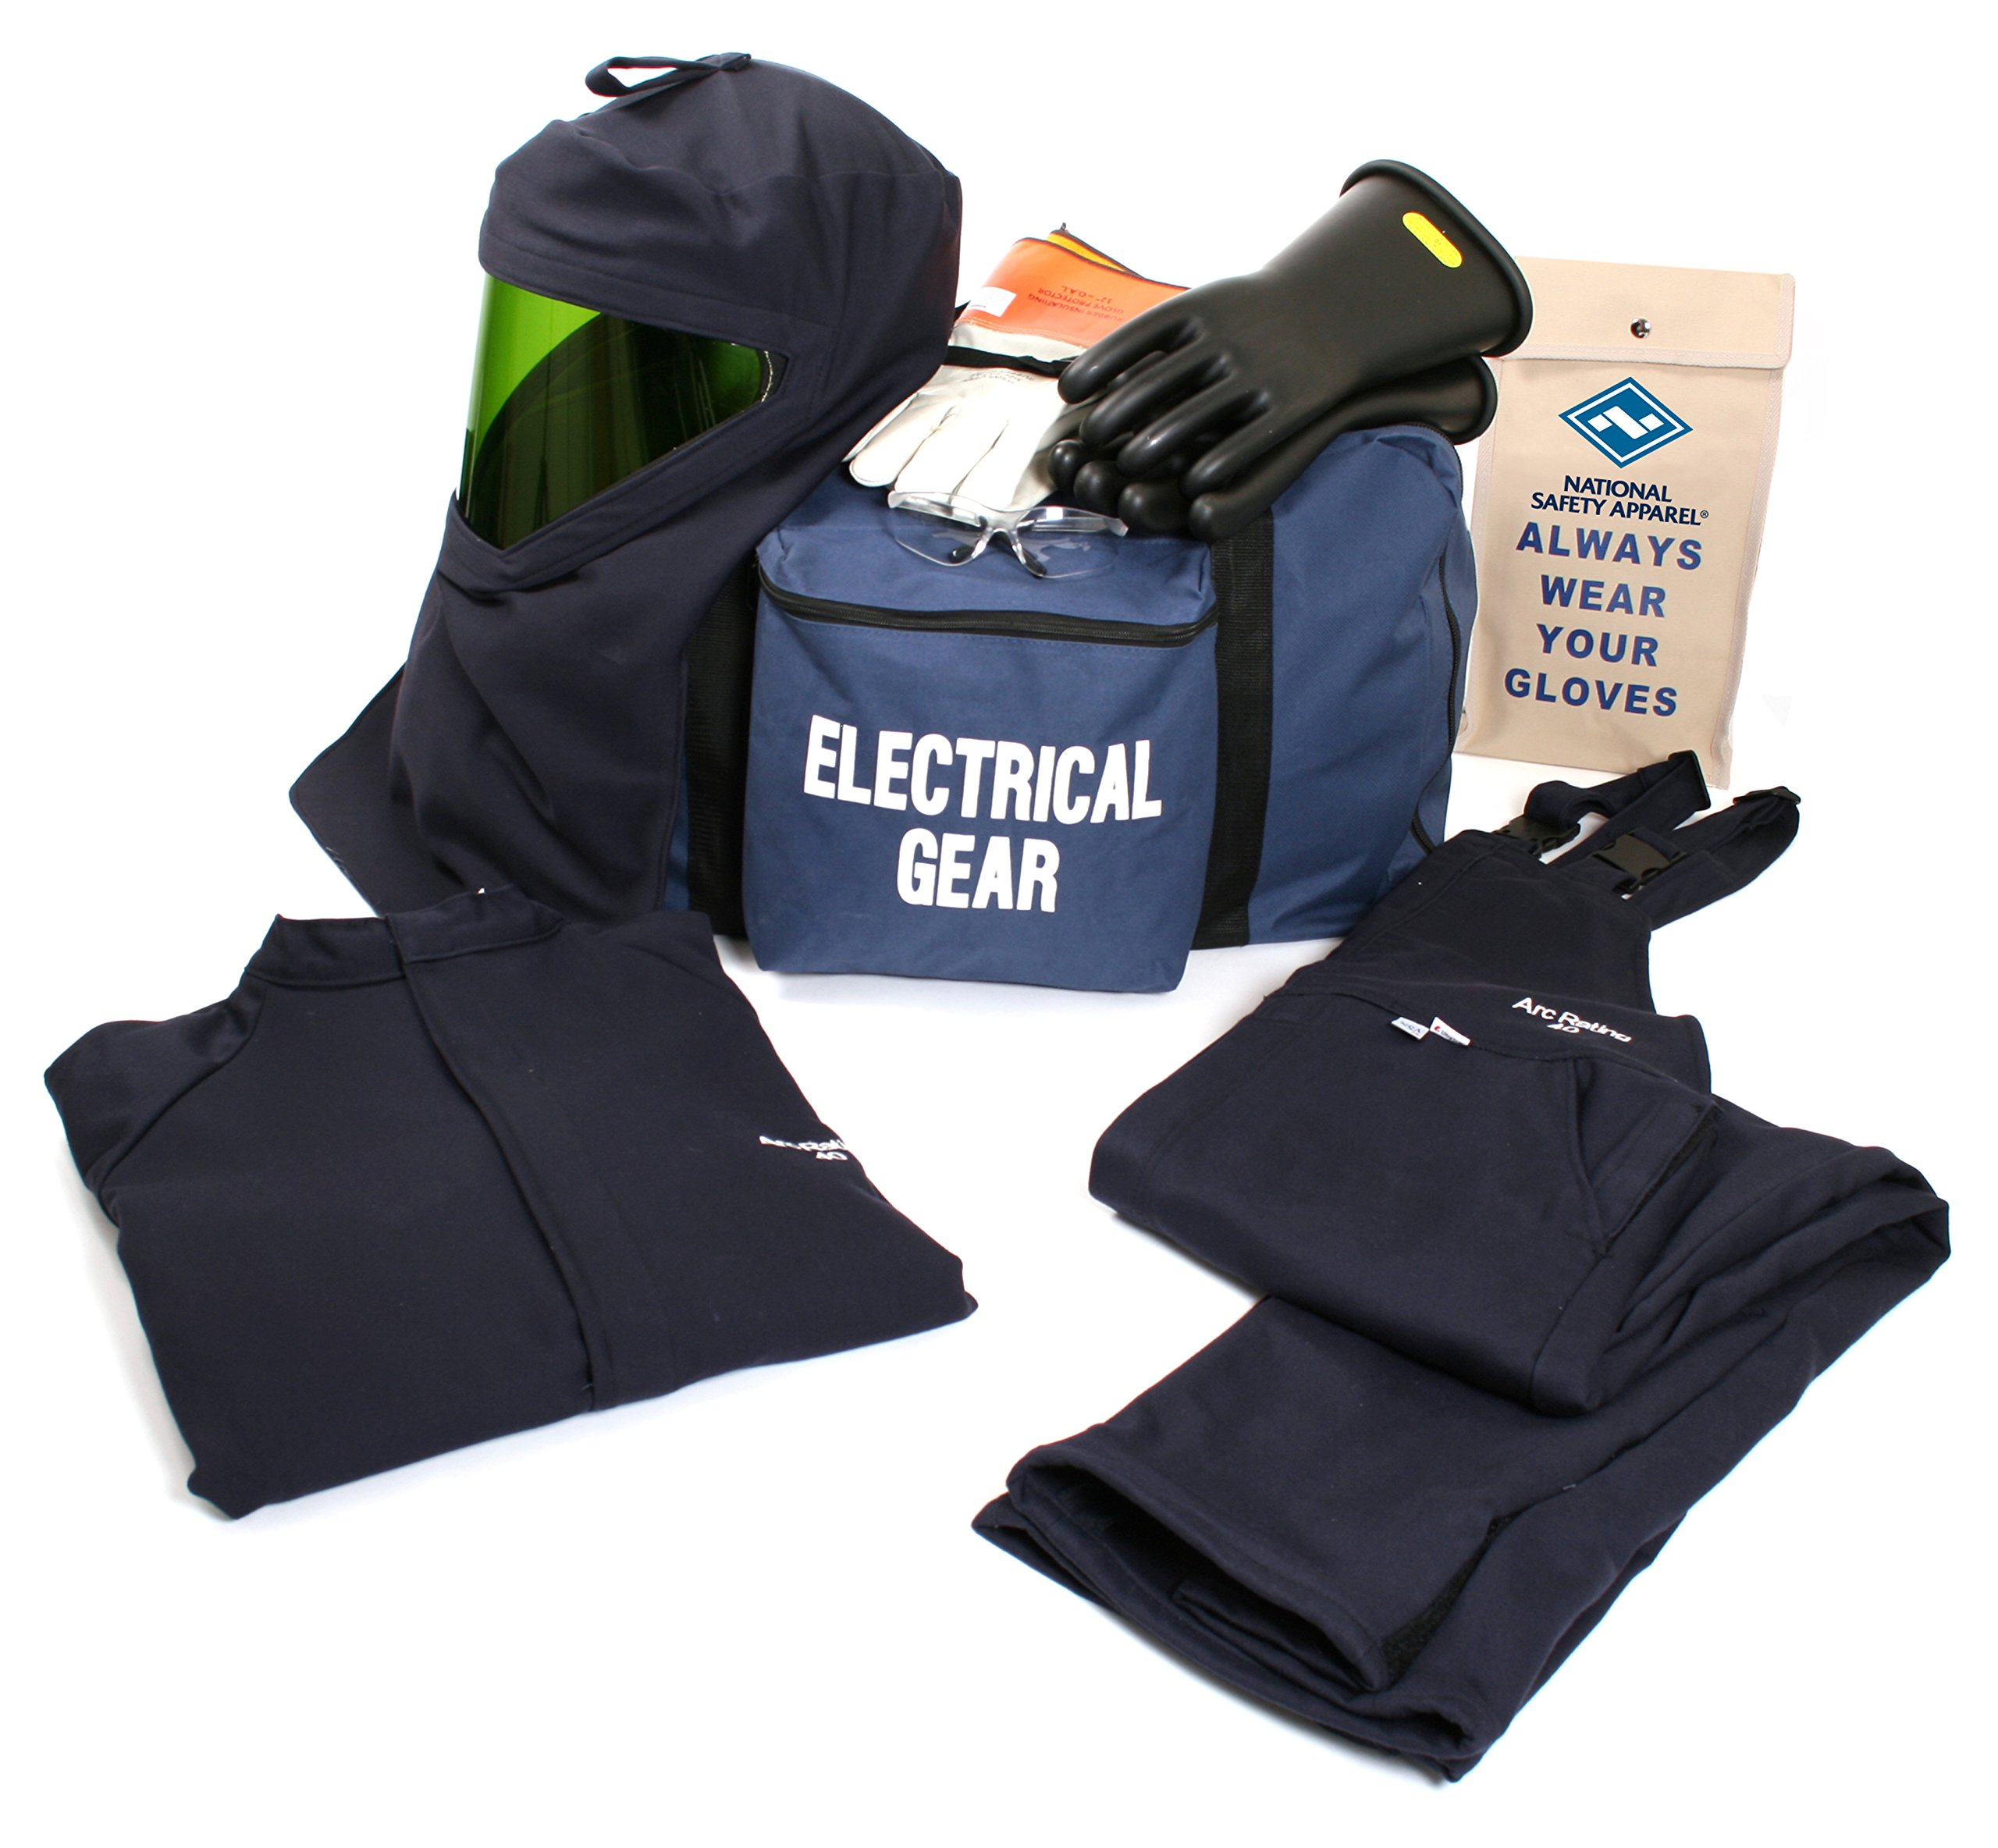 National Safety Apparel KIT4SC40LG09 ArcGuard UltraSoft Arc Flash Kit with Short Coat and Bib Overall, 40 Calorie, Large/Glove Size 9, Navy